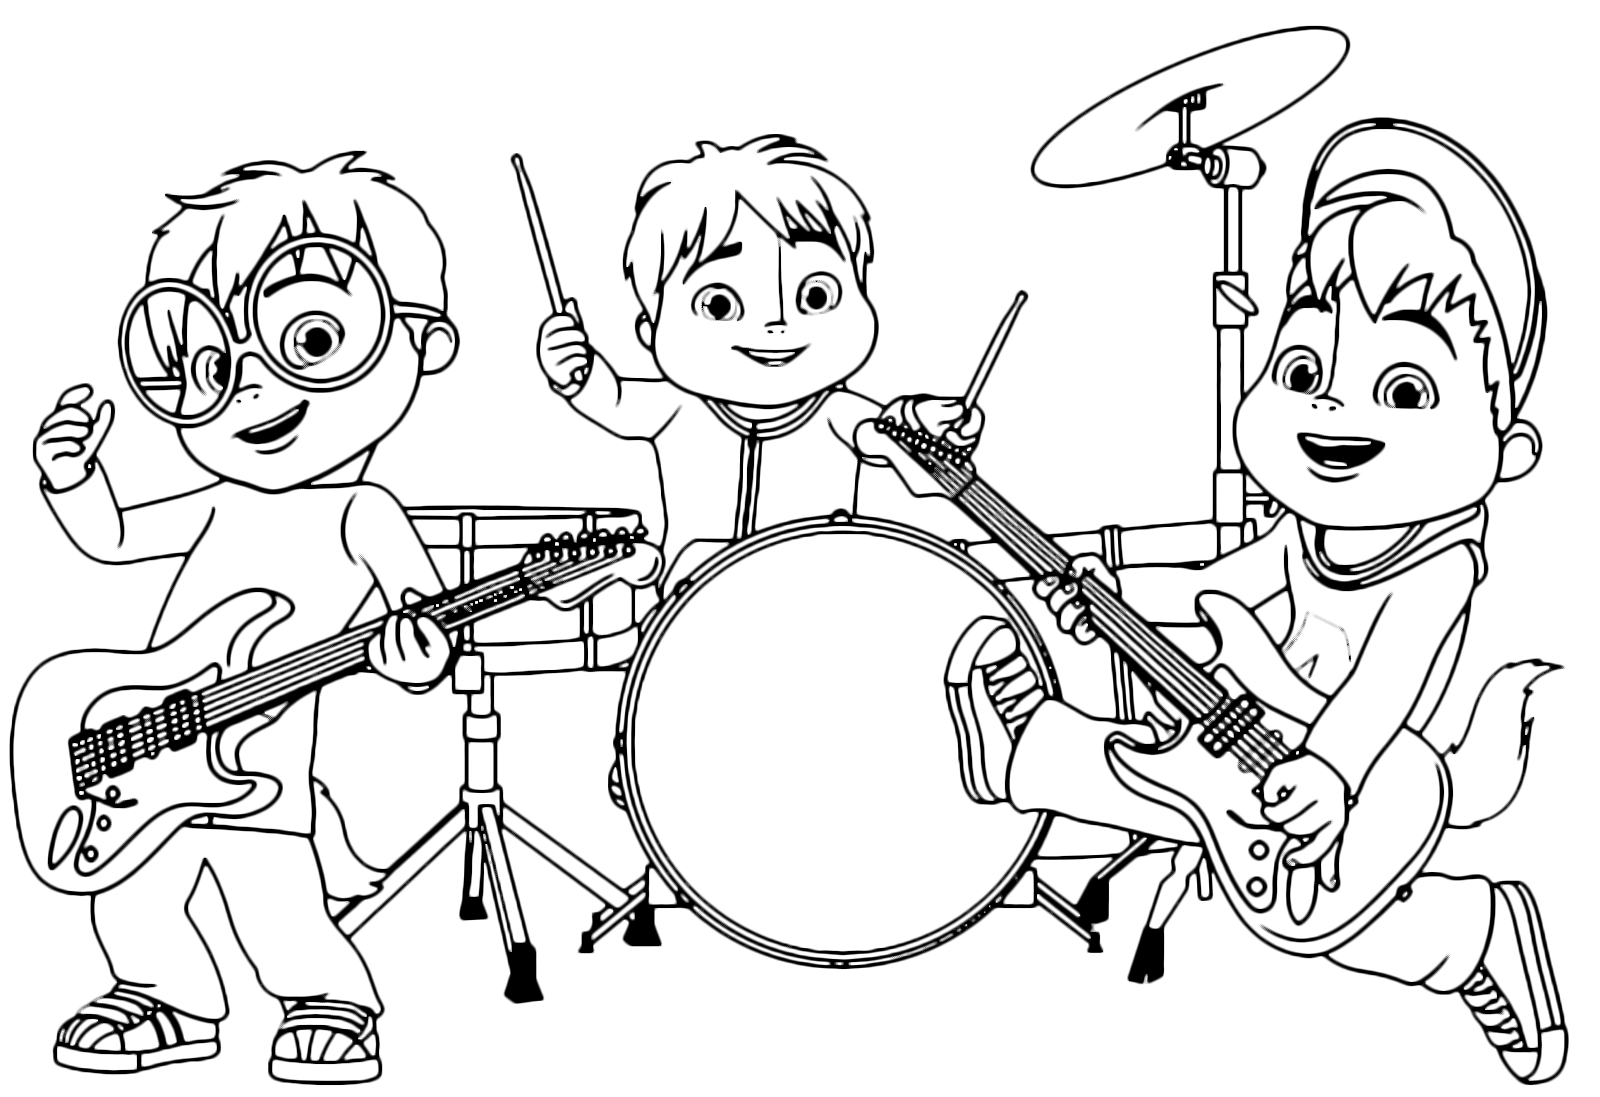 alvin and the chipmunks coloring pages alvin and the chipmunks coloring pages coloring chipmunks alvin pages and the